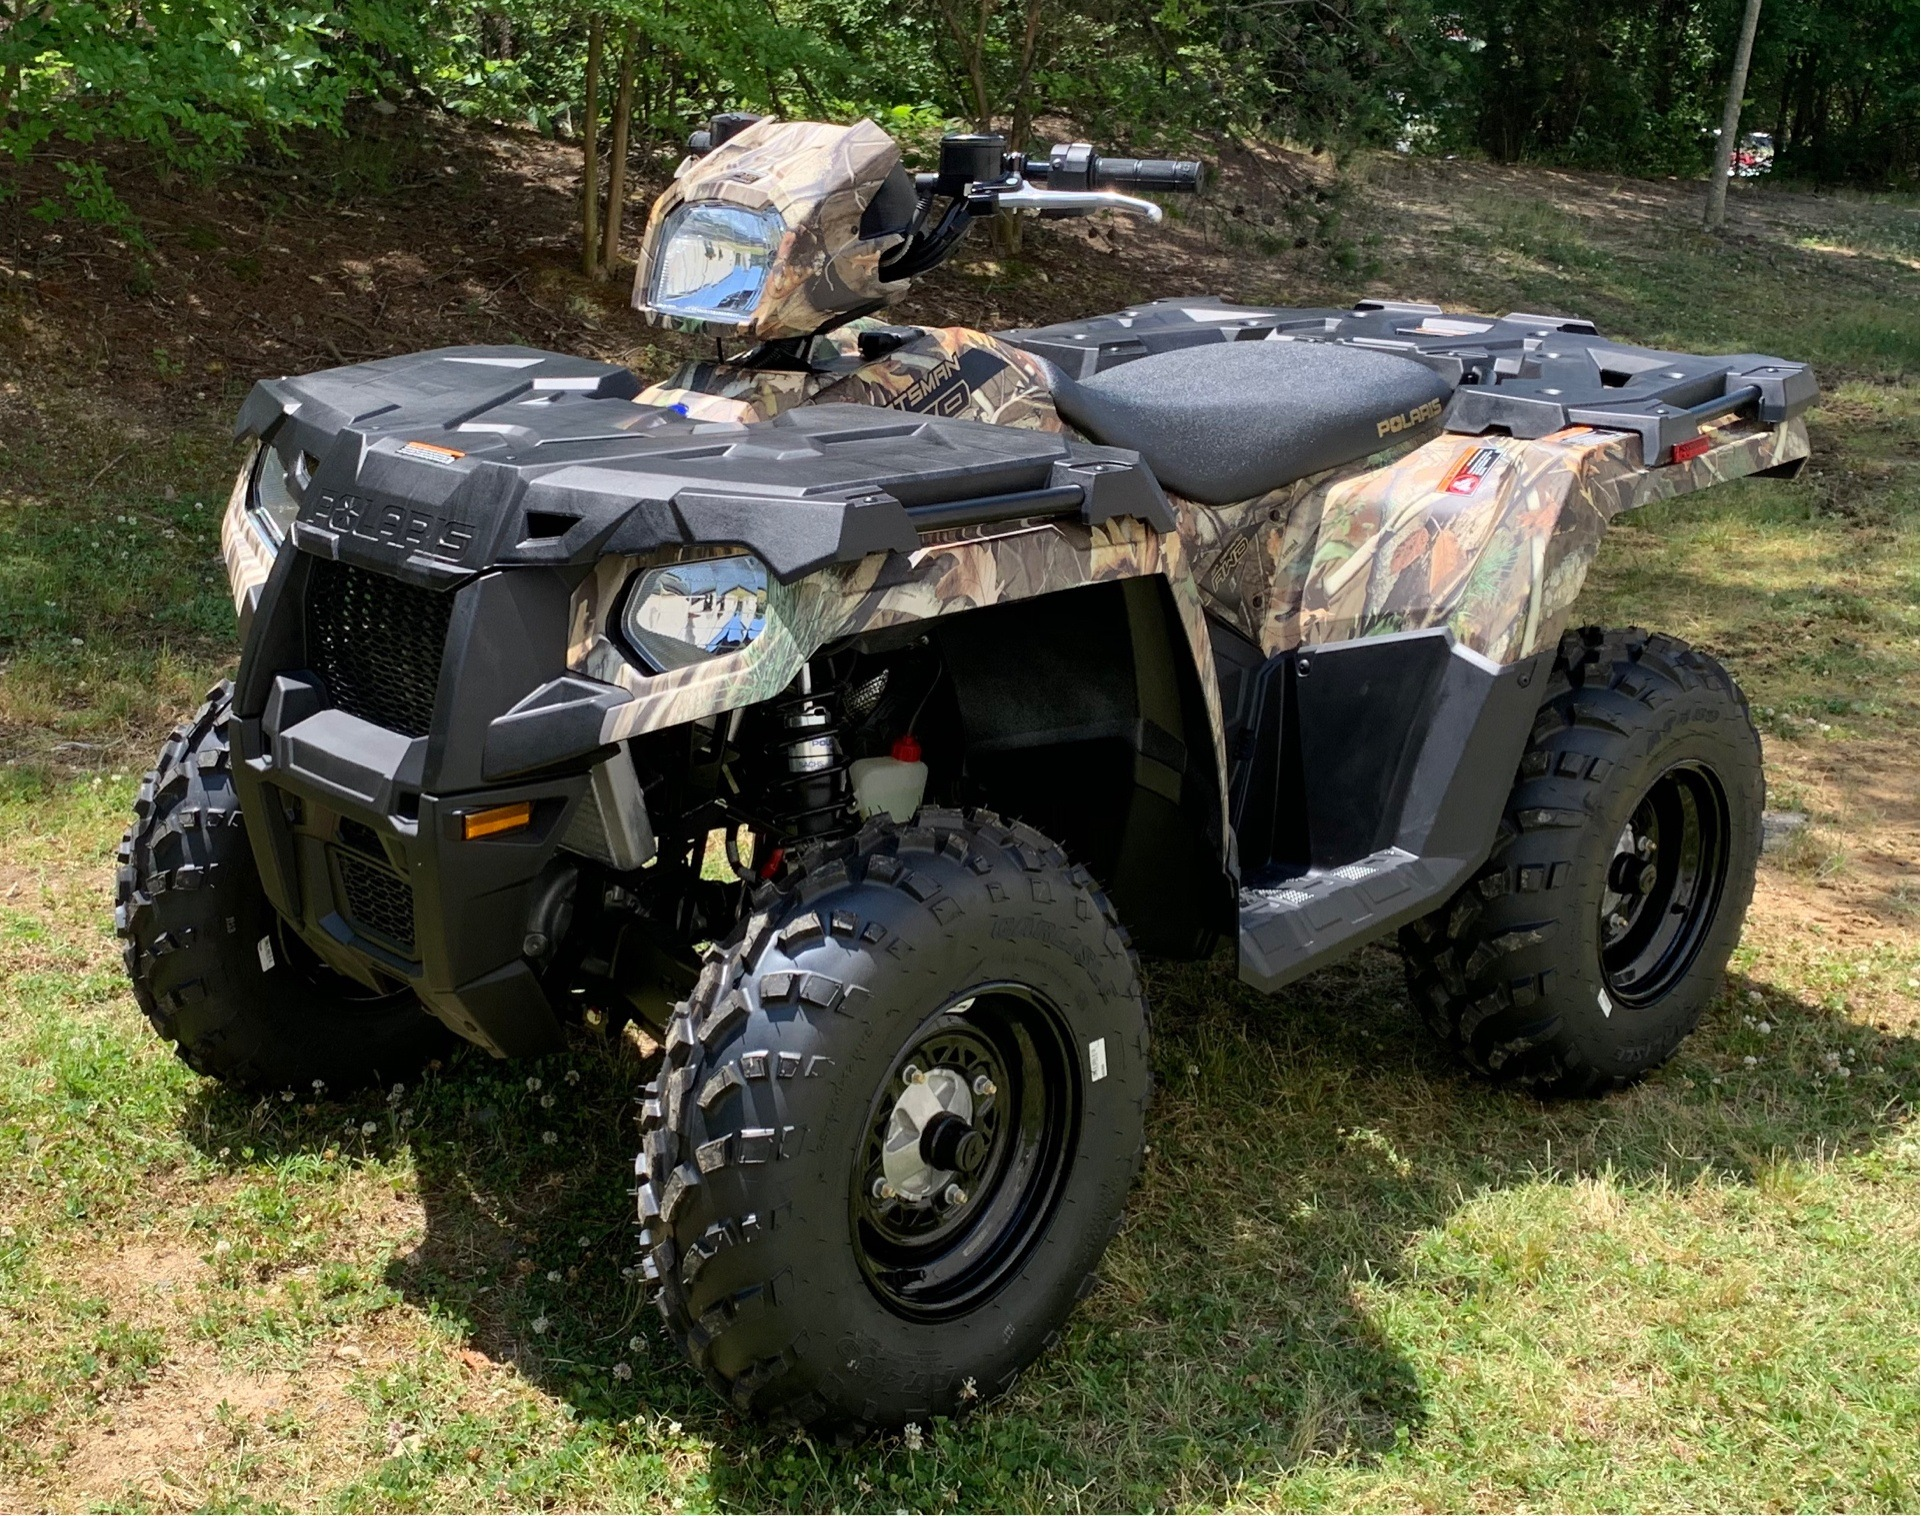 2019 Polaris Sportsman 570 EPS Camo in High Point, North Carolina - Photo 1